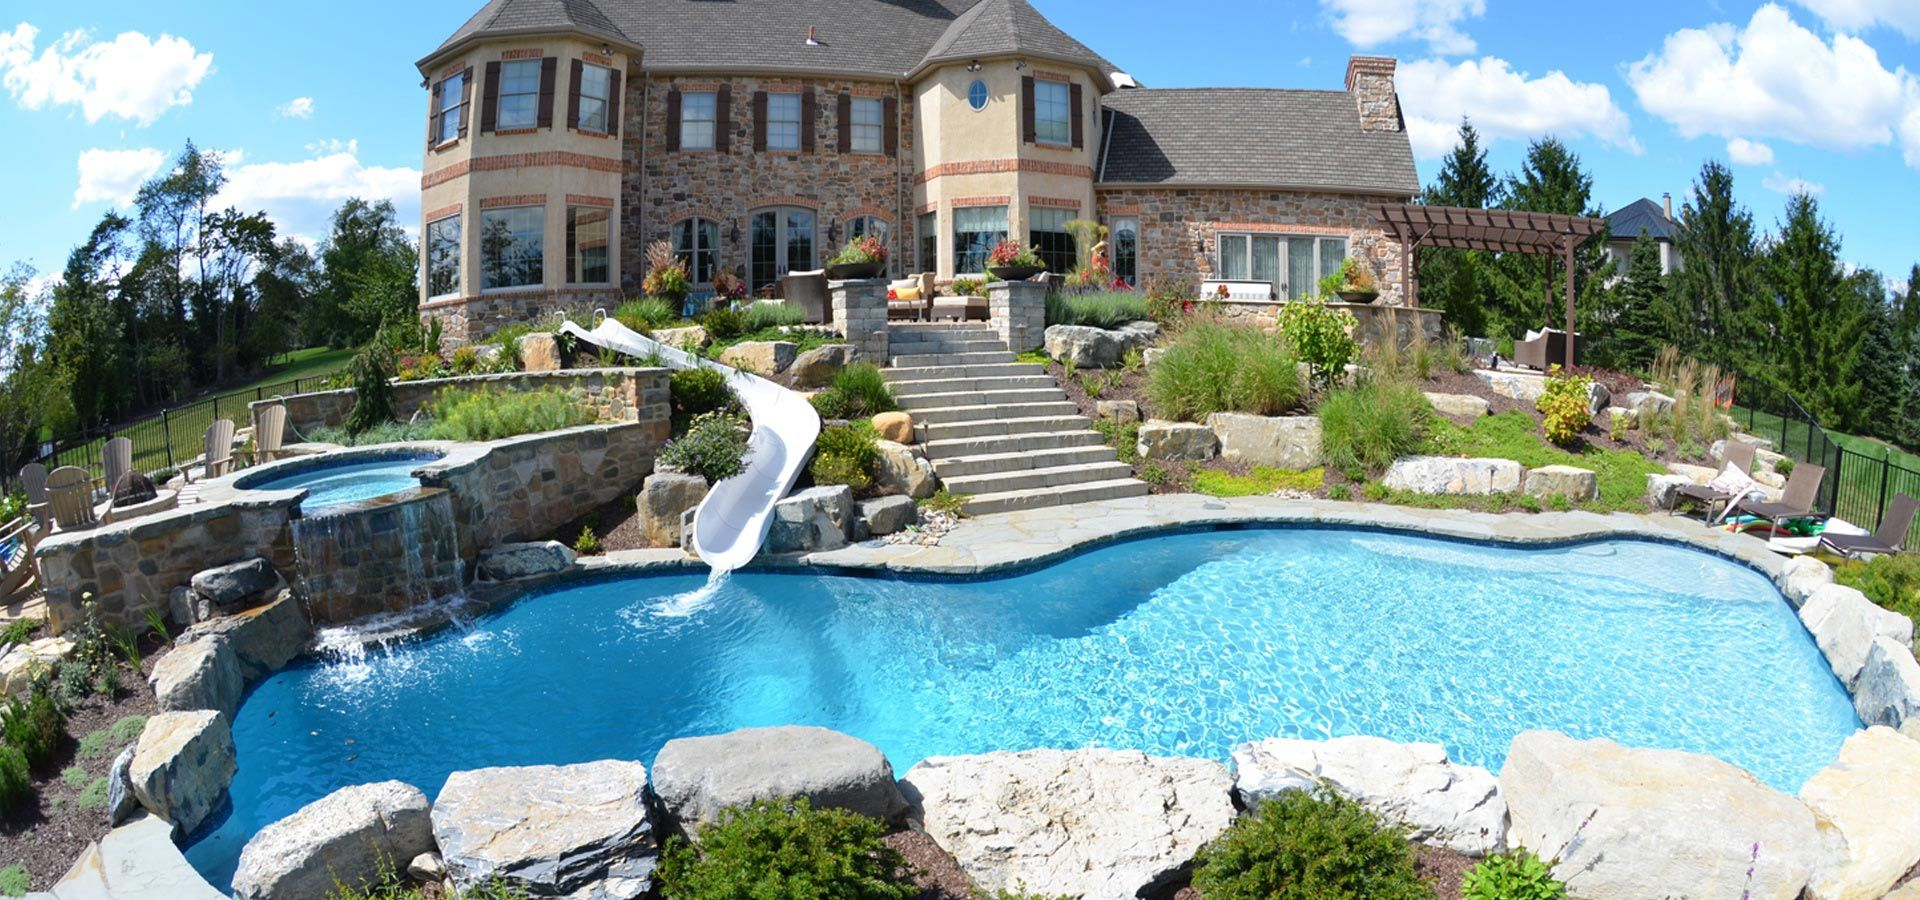 Custom pool with waterslide spa diamond brite finish for Poolside ideas